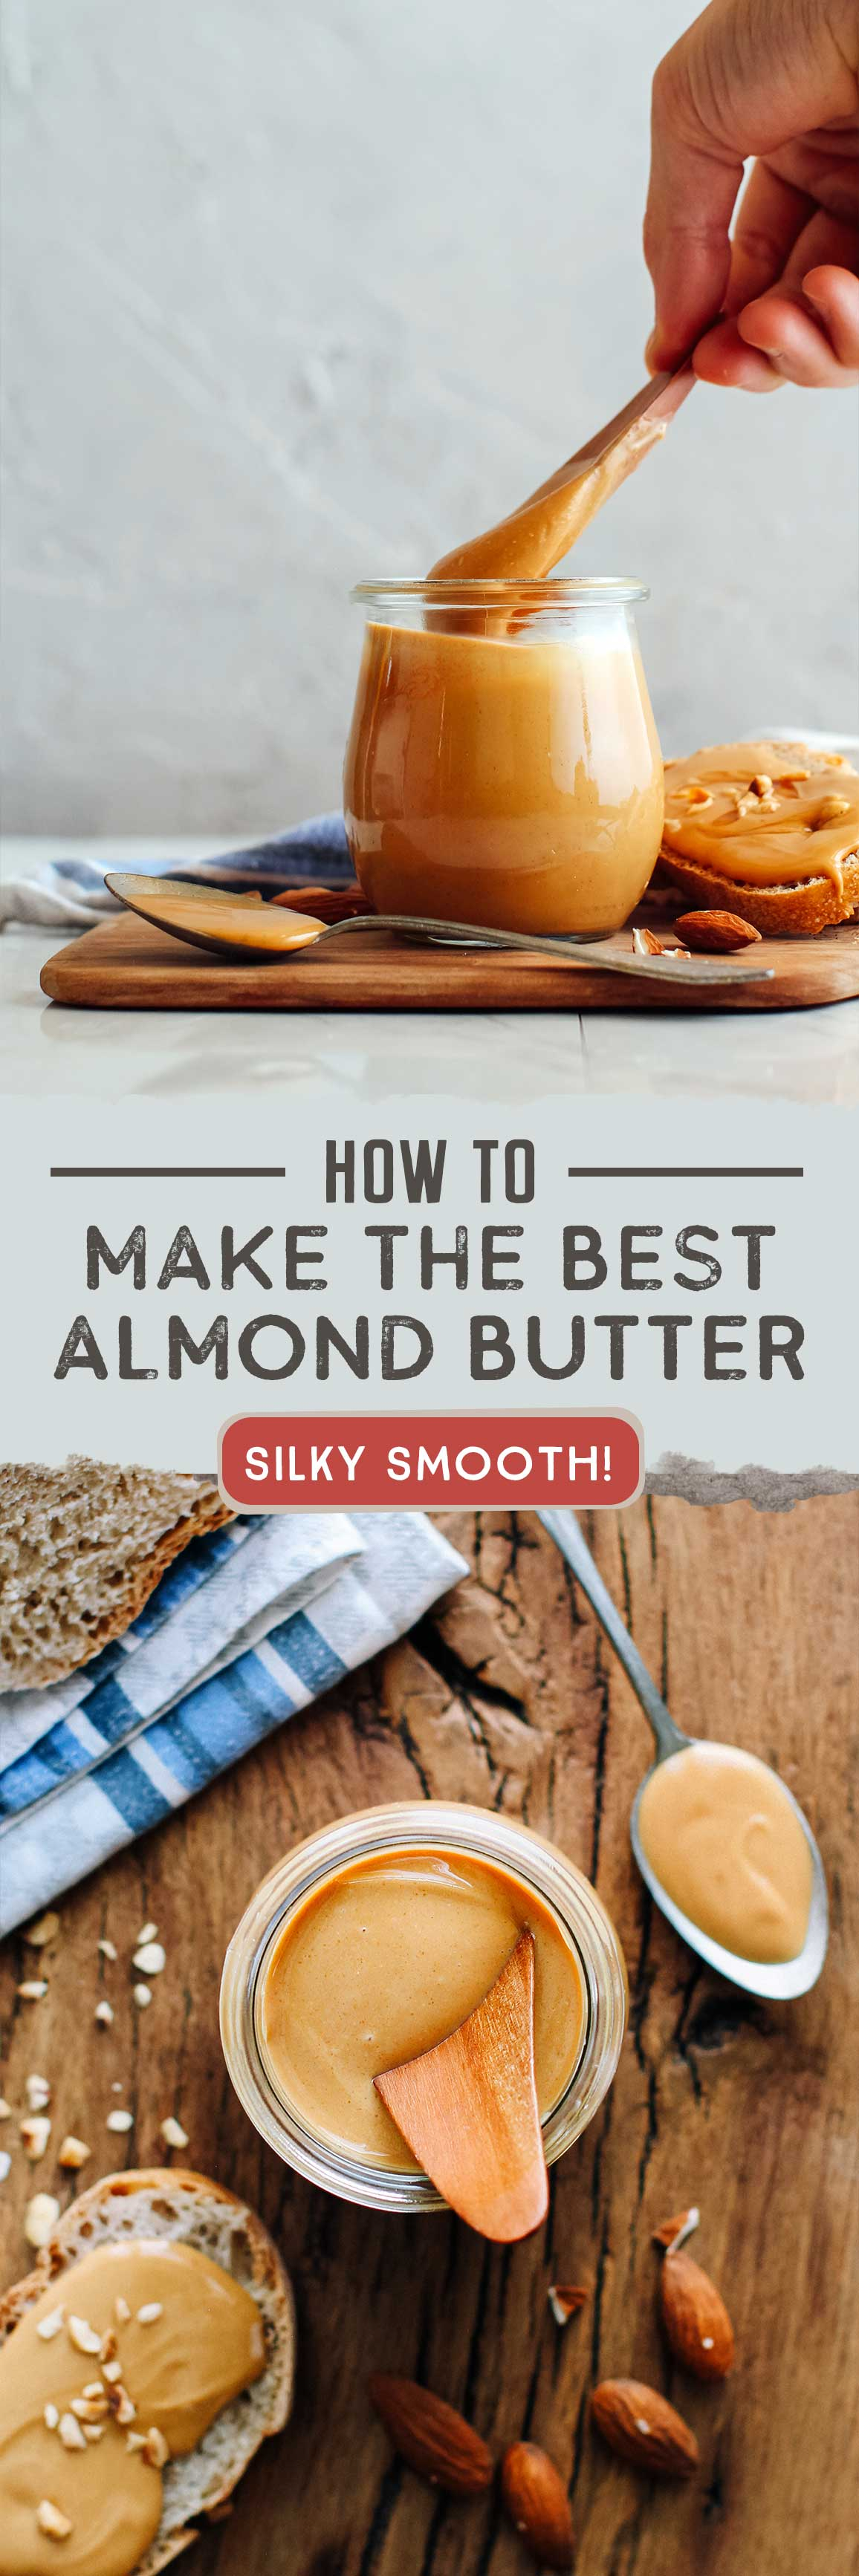 How to Make the Best Almond Butter